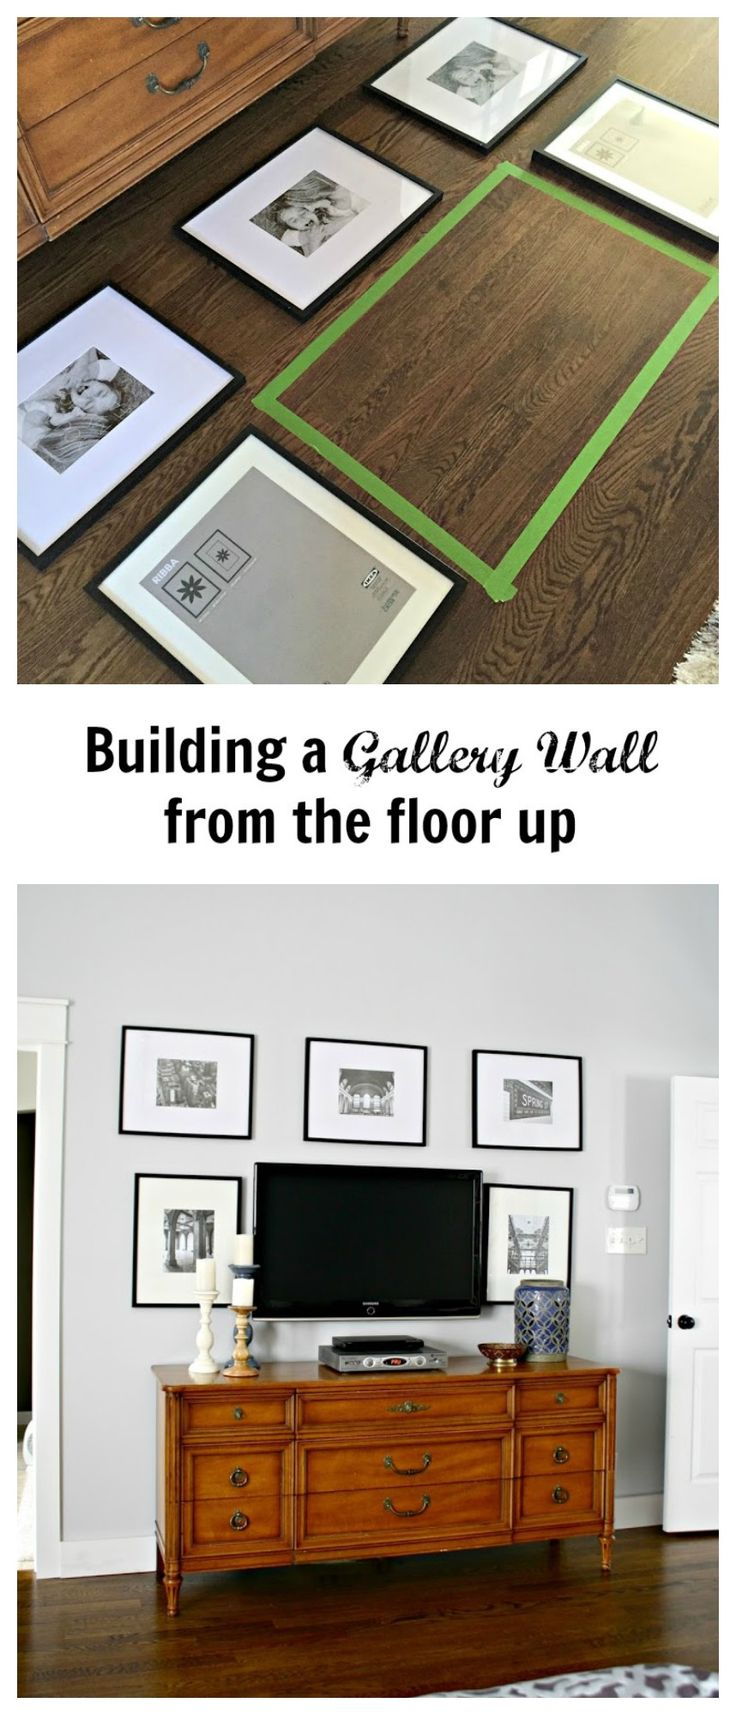 My simple tip on how to Build a Gallery Wall. Now my Master Bedroom wall is finished!